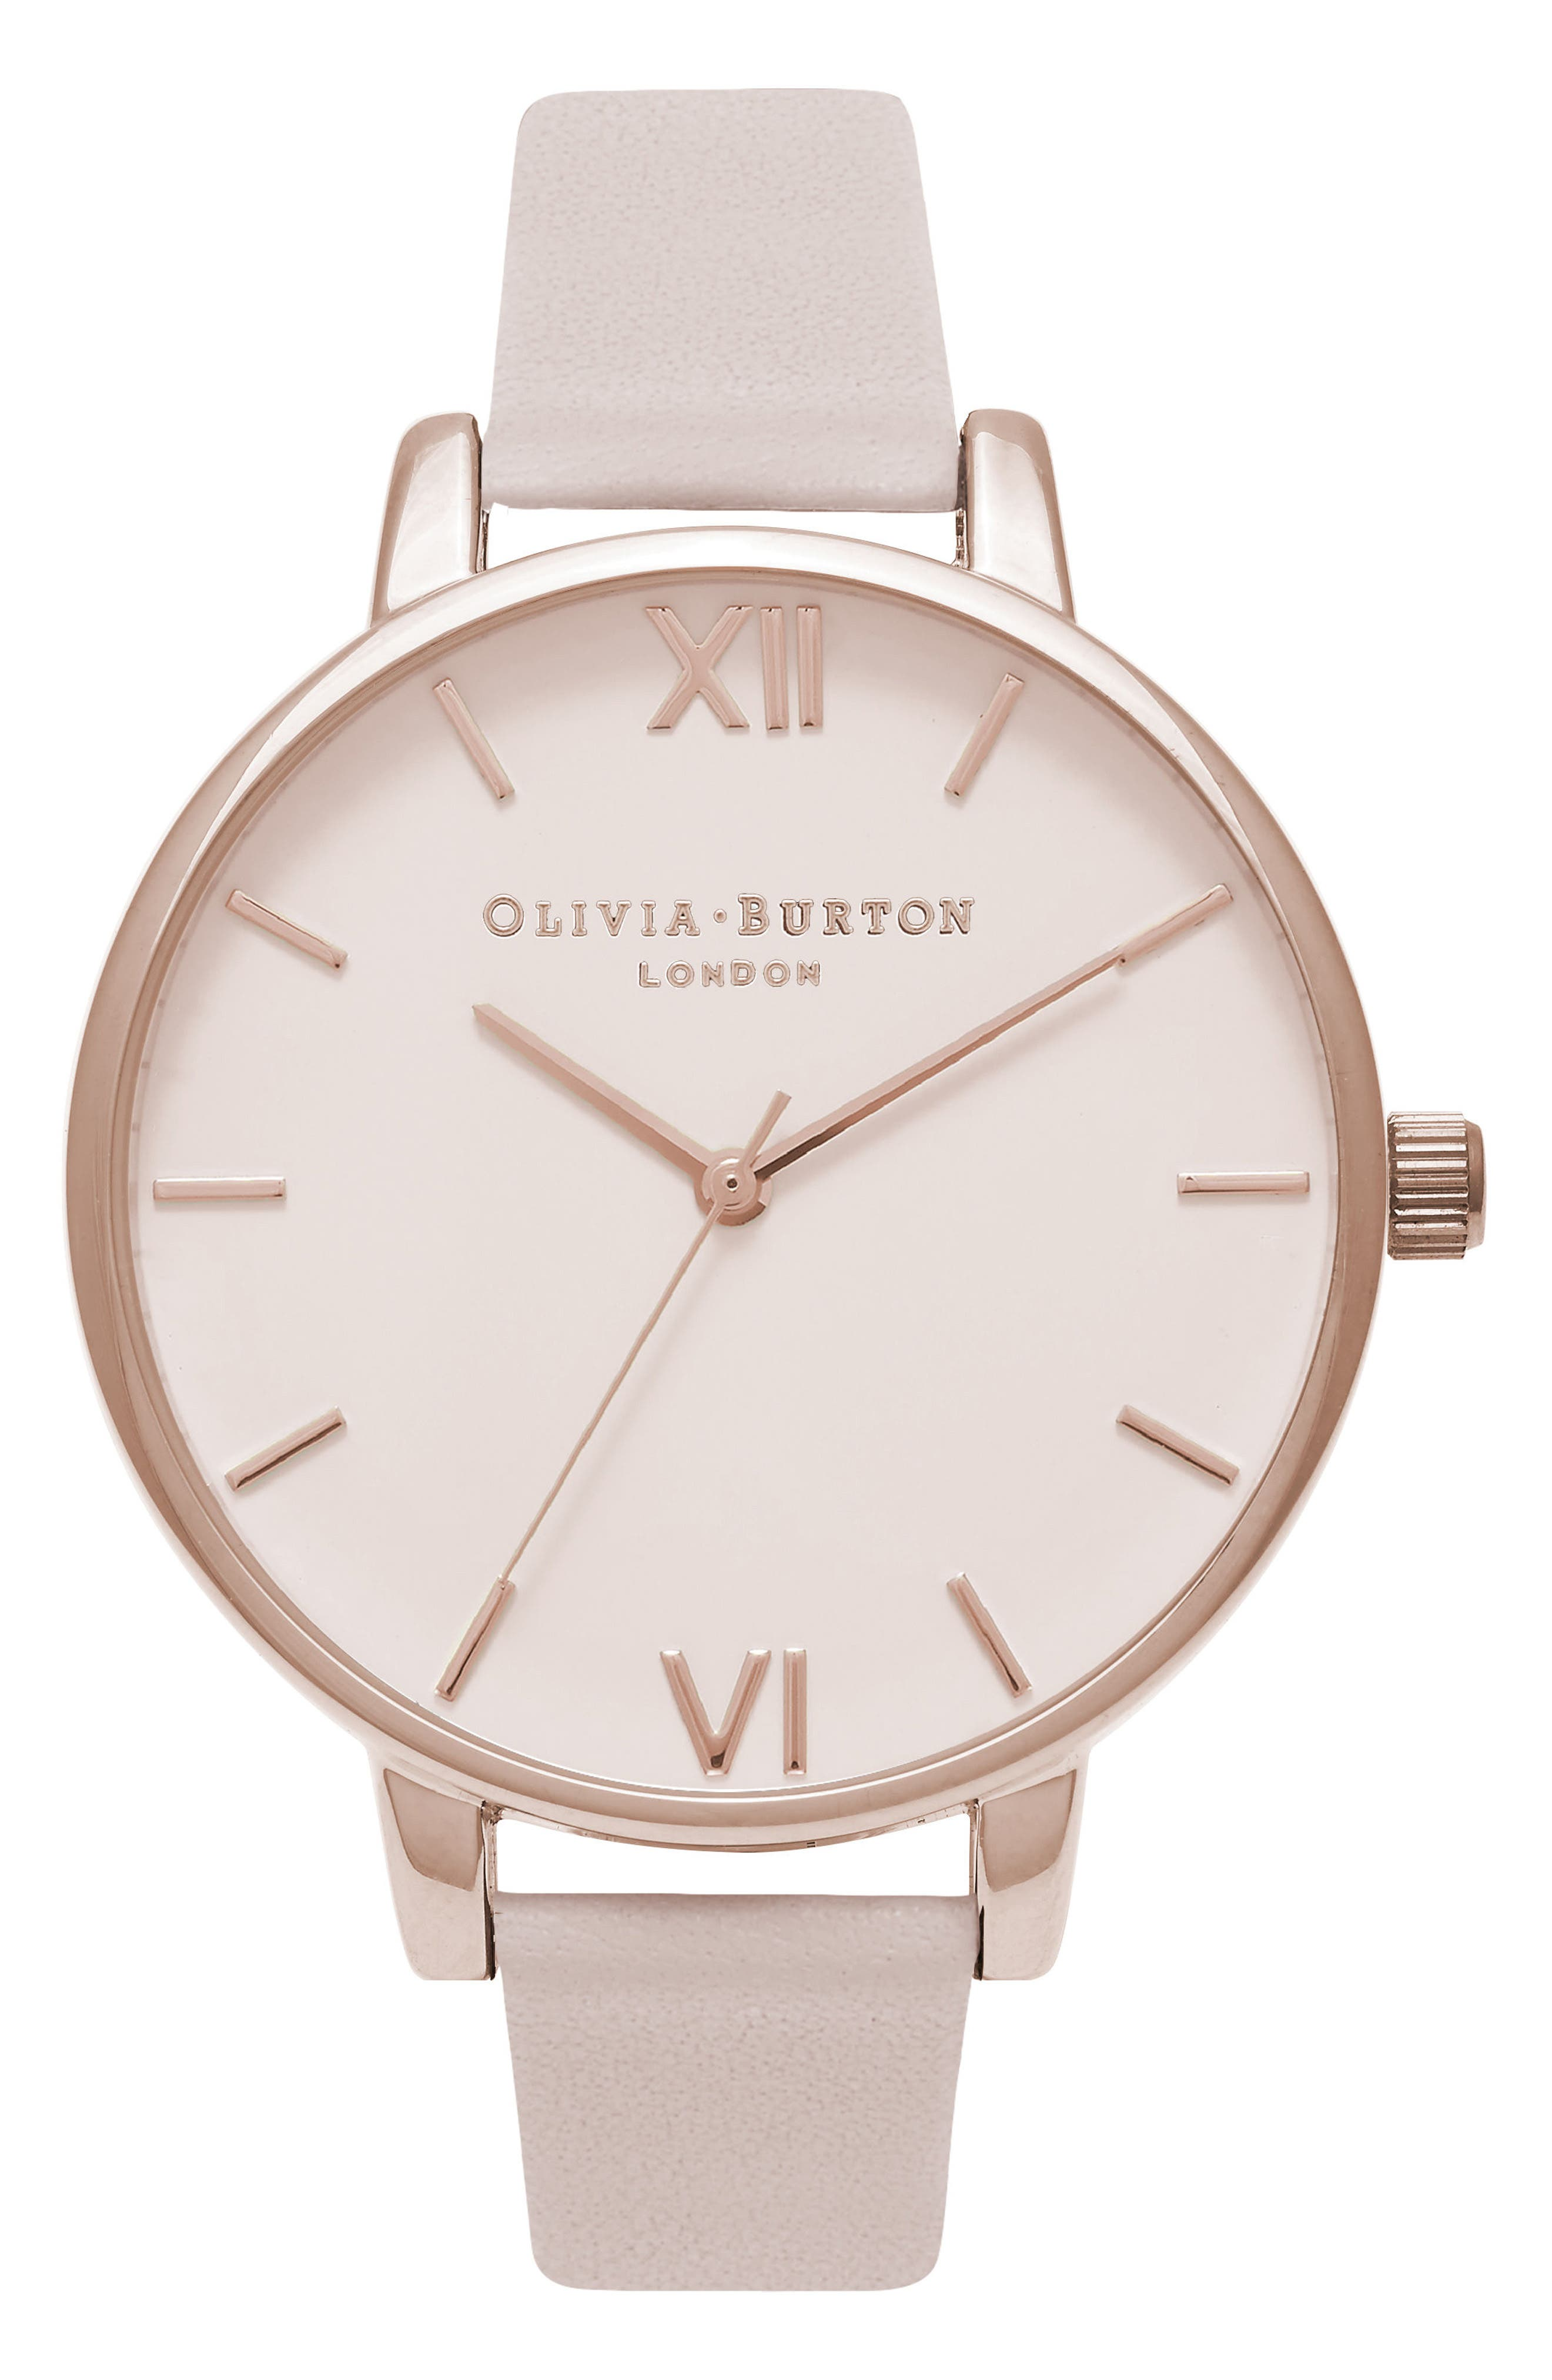 Begin to Blush Leather Strap Watch, 38mm,                         Main,                         color, Blush/ Rose Gold